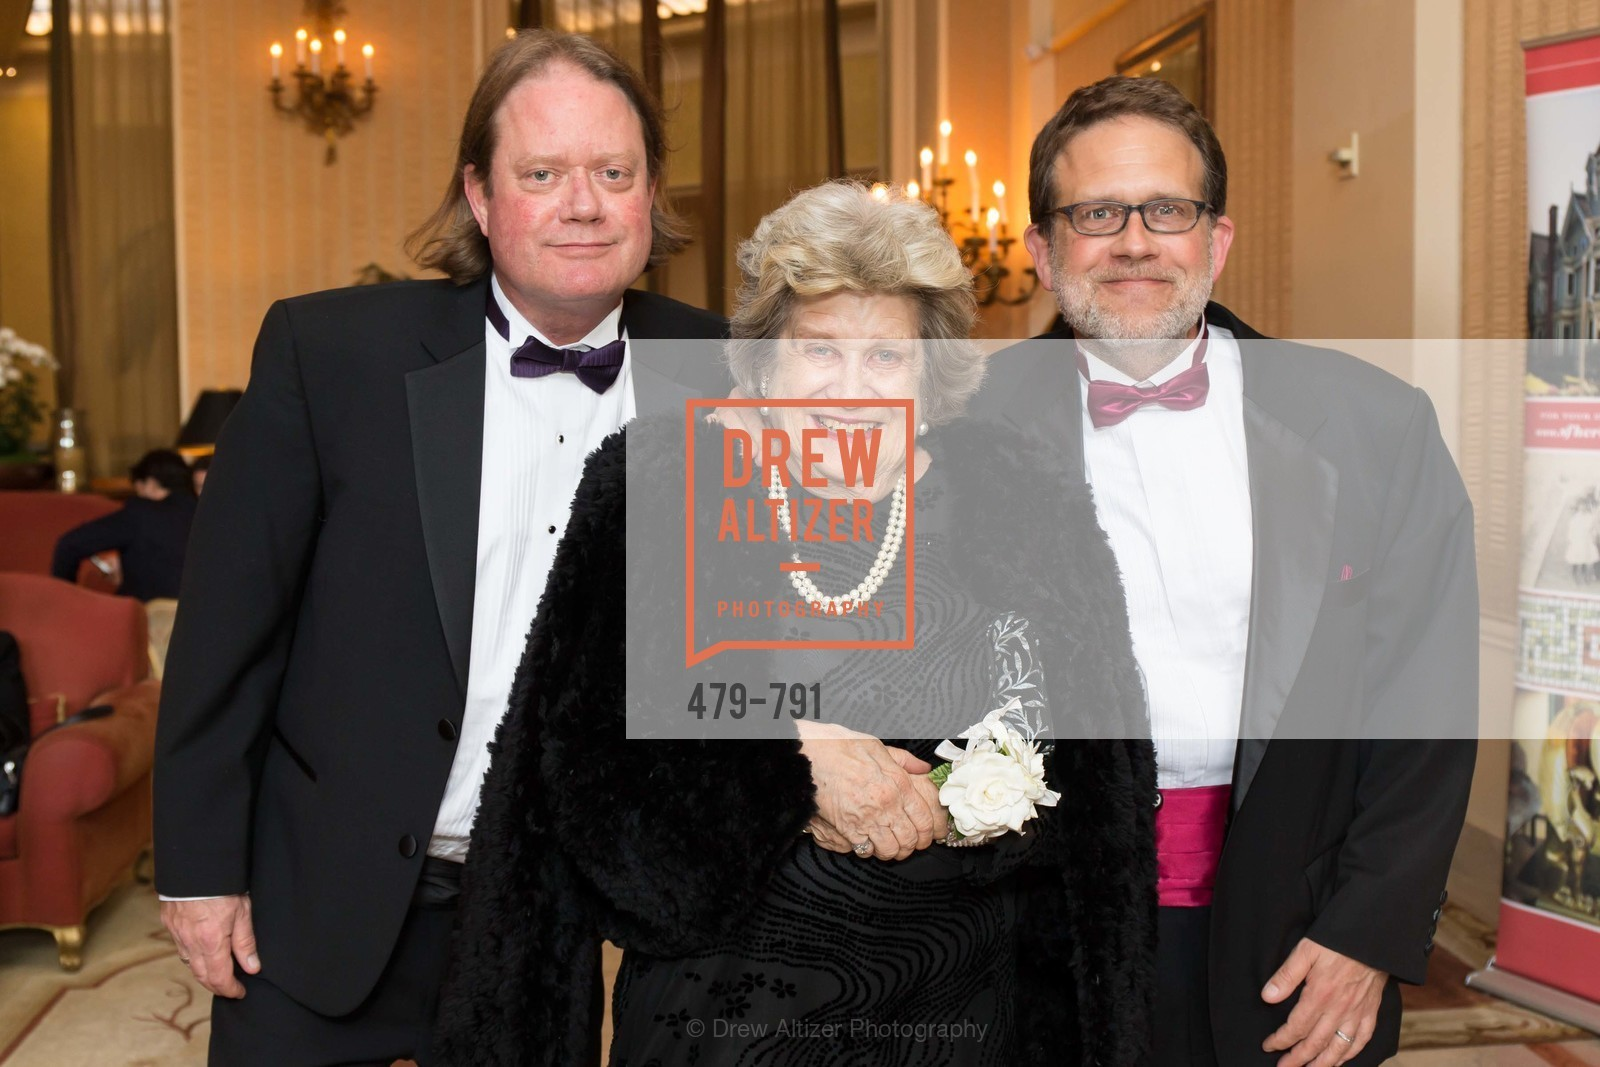 Geoff Platt, Geegee Bland Platt, Peter Platt, SAN FRANCISCO HERITAGE Soiree 2015, US, April 19th, 2015,Drew Altizer, Drew Altizer Photography, full-service agency, private events, San Francisco photographer, photographer california